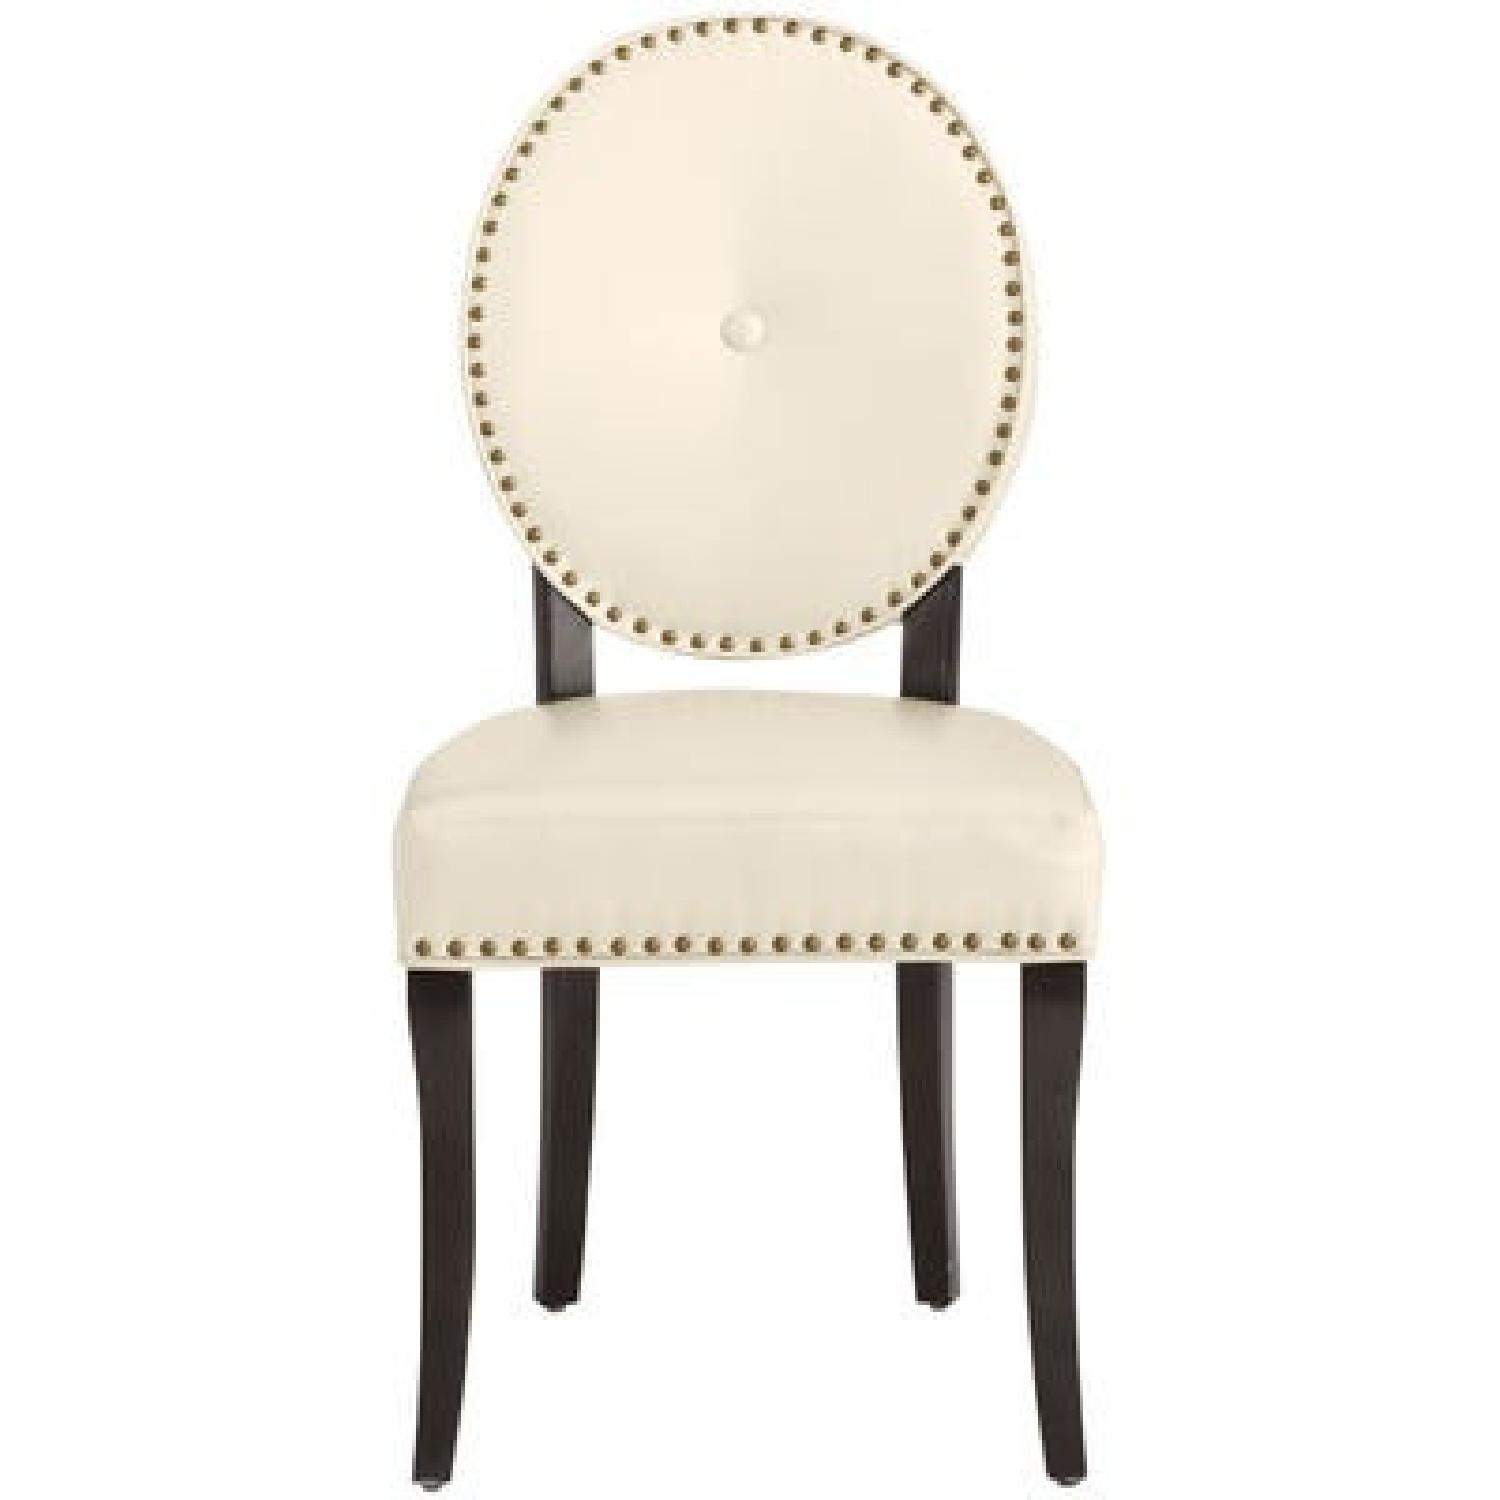 Pier 1 Cadence Ivory Dining Chair - image-0